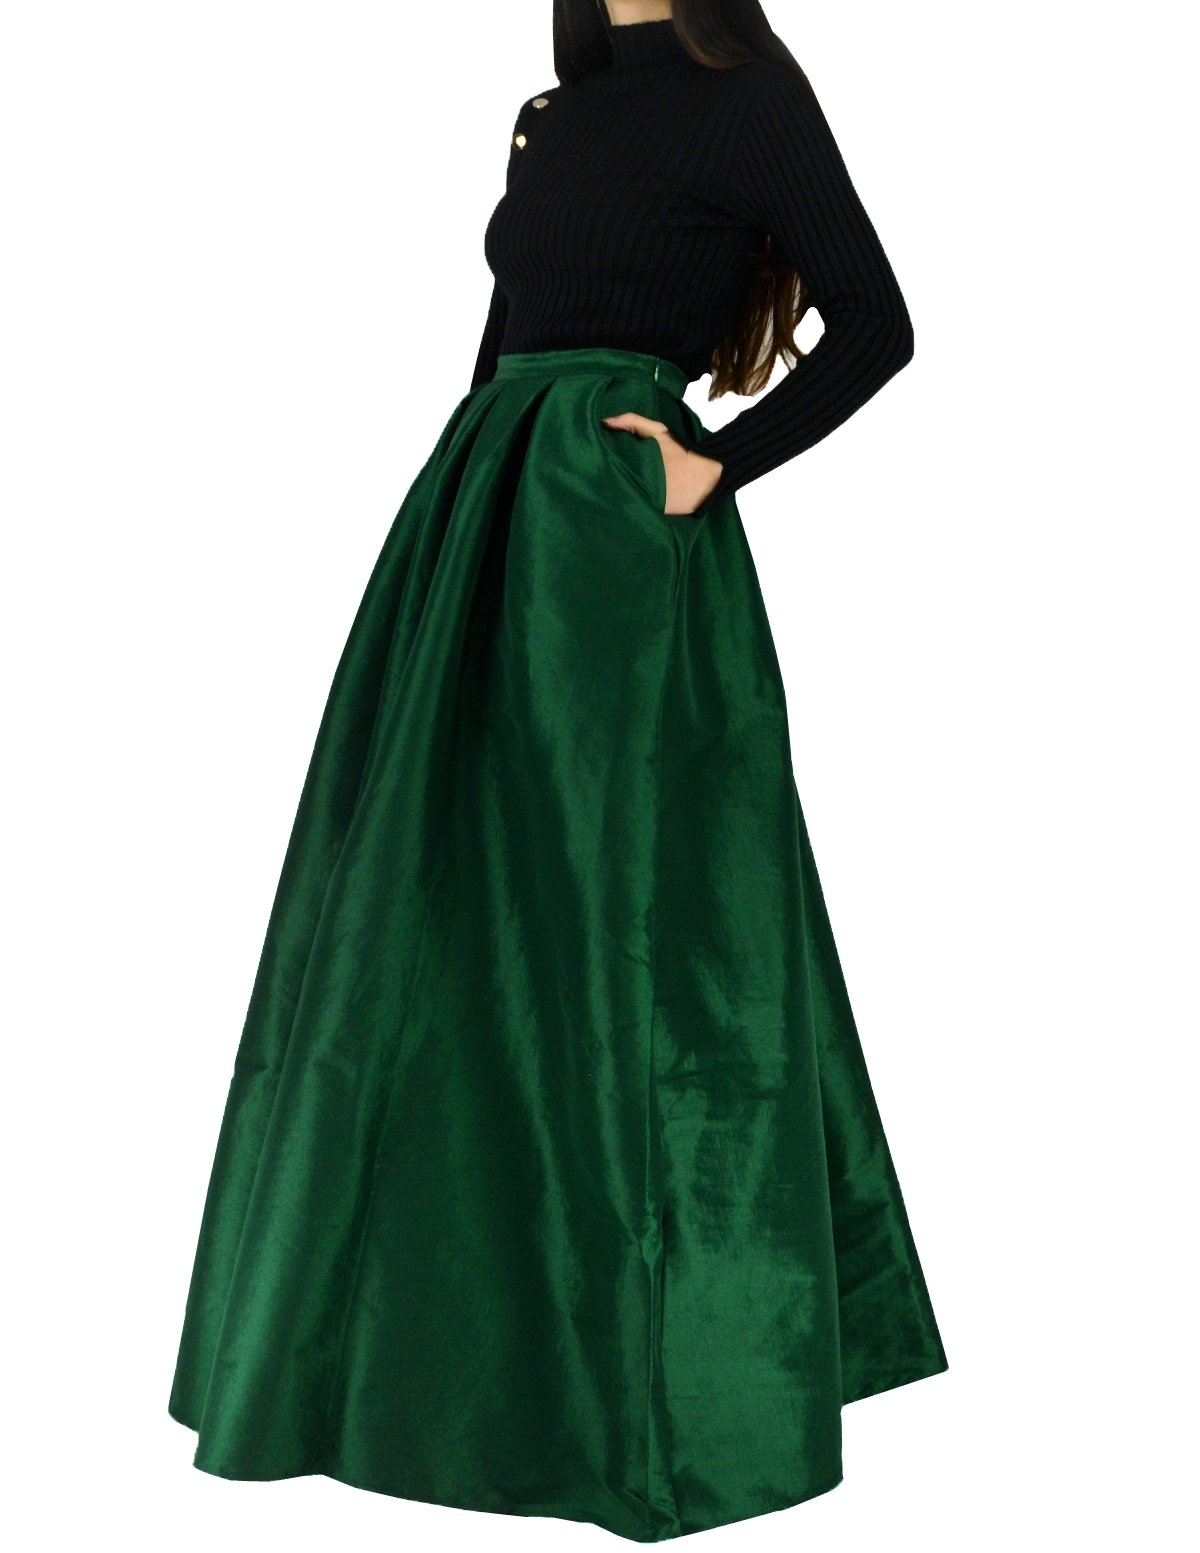 YSJERA Women's High Waist A-Line Pleated Maxi Skirts Party Swing Skirt with Pockets (10, Green) by YSJERA